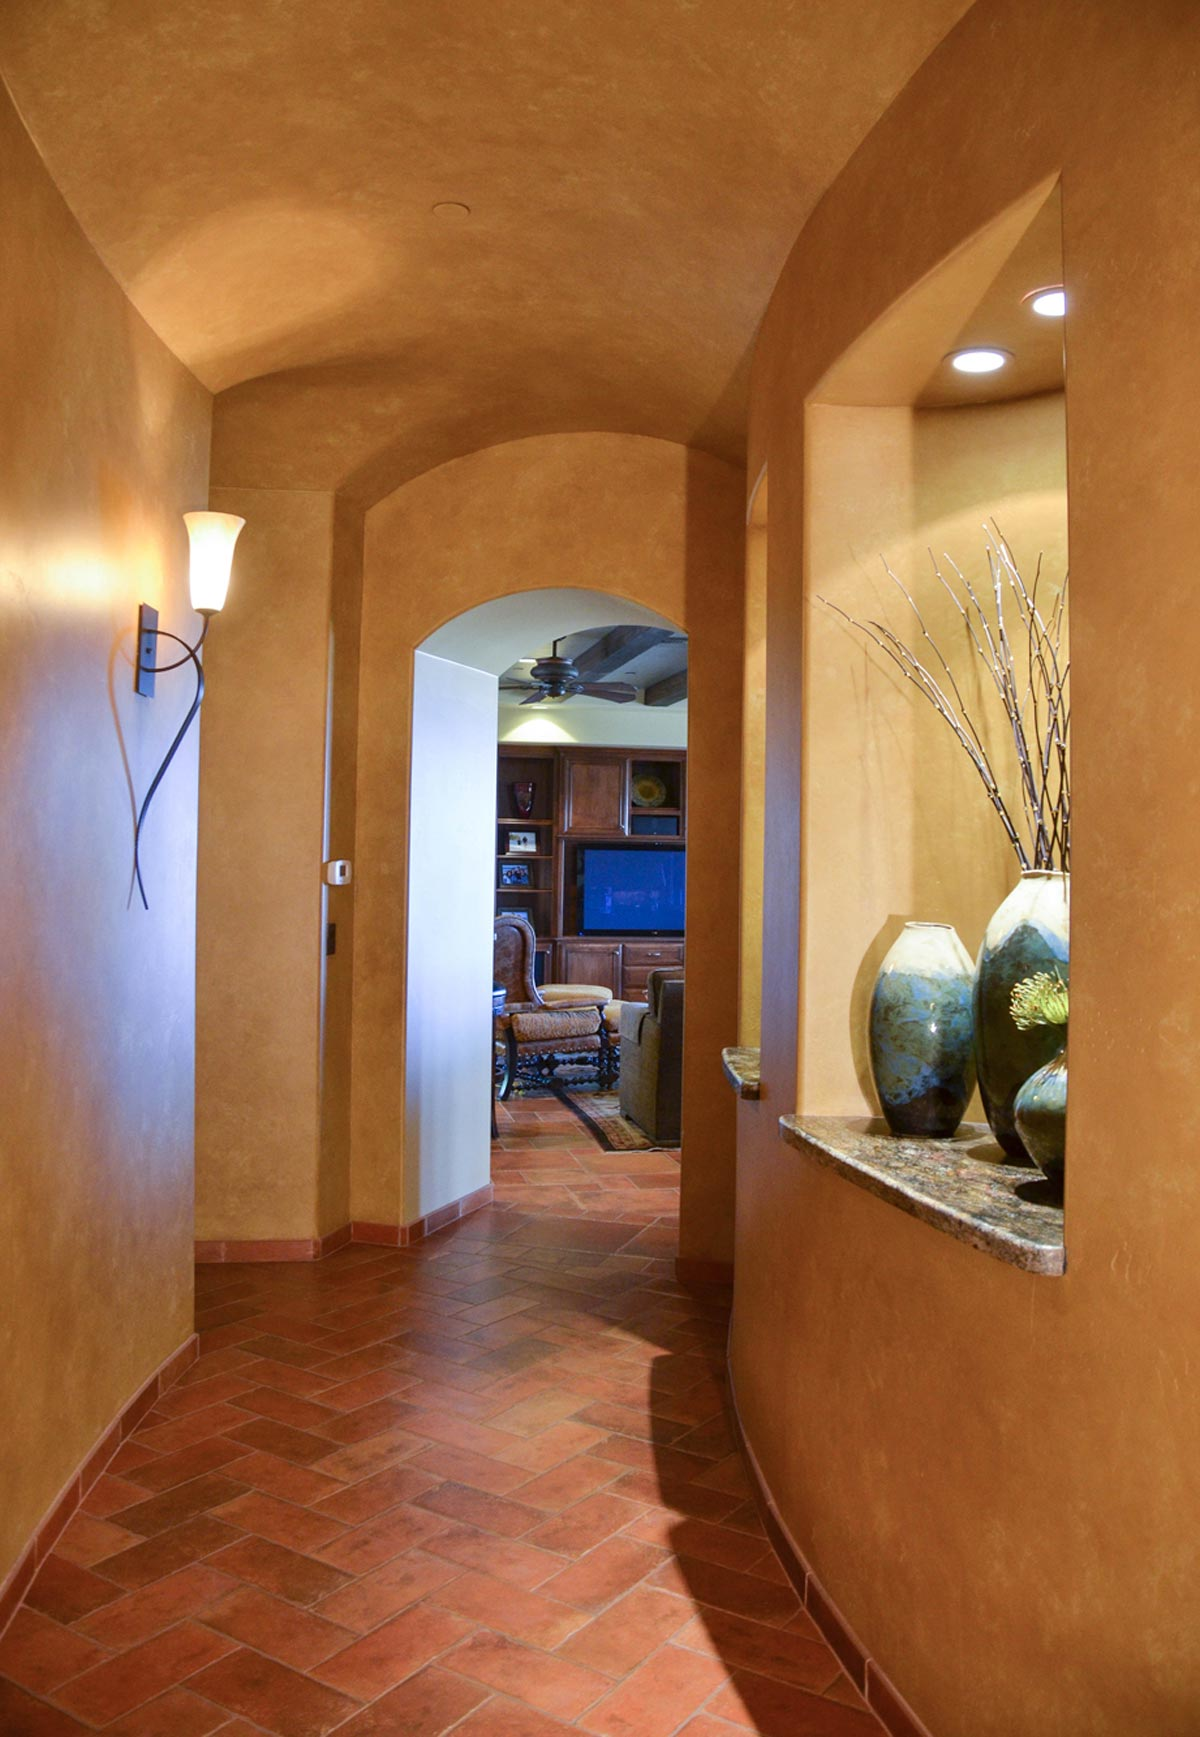 The curving hallway offers views into the music room and art niches, along with access to the powder room, laundry/sewing room and wine cellar.